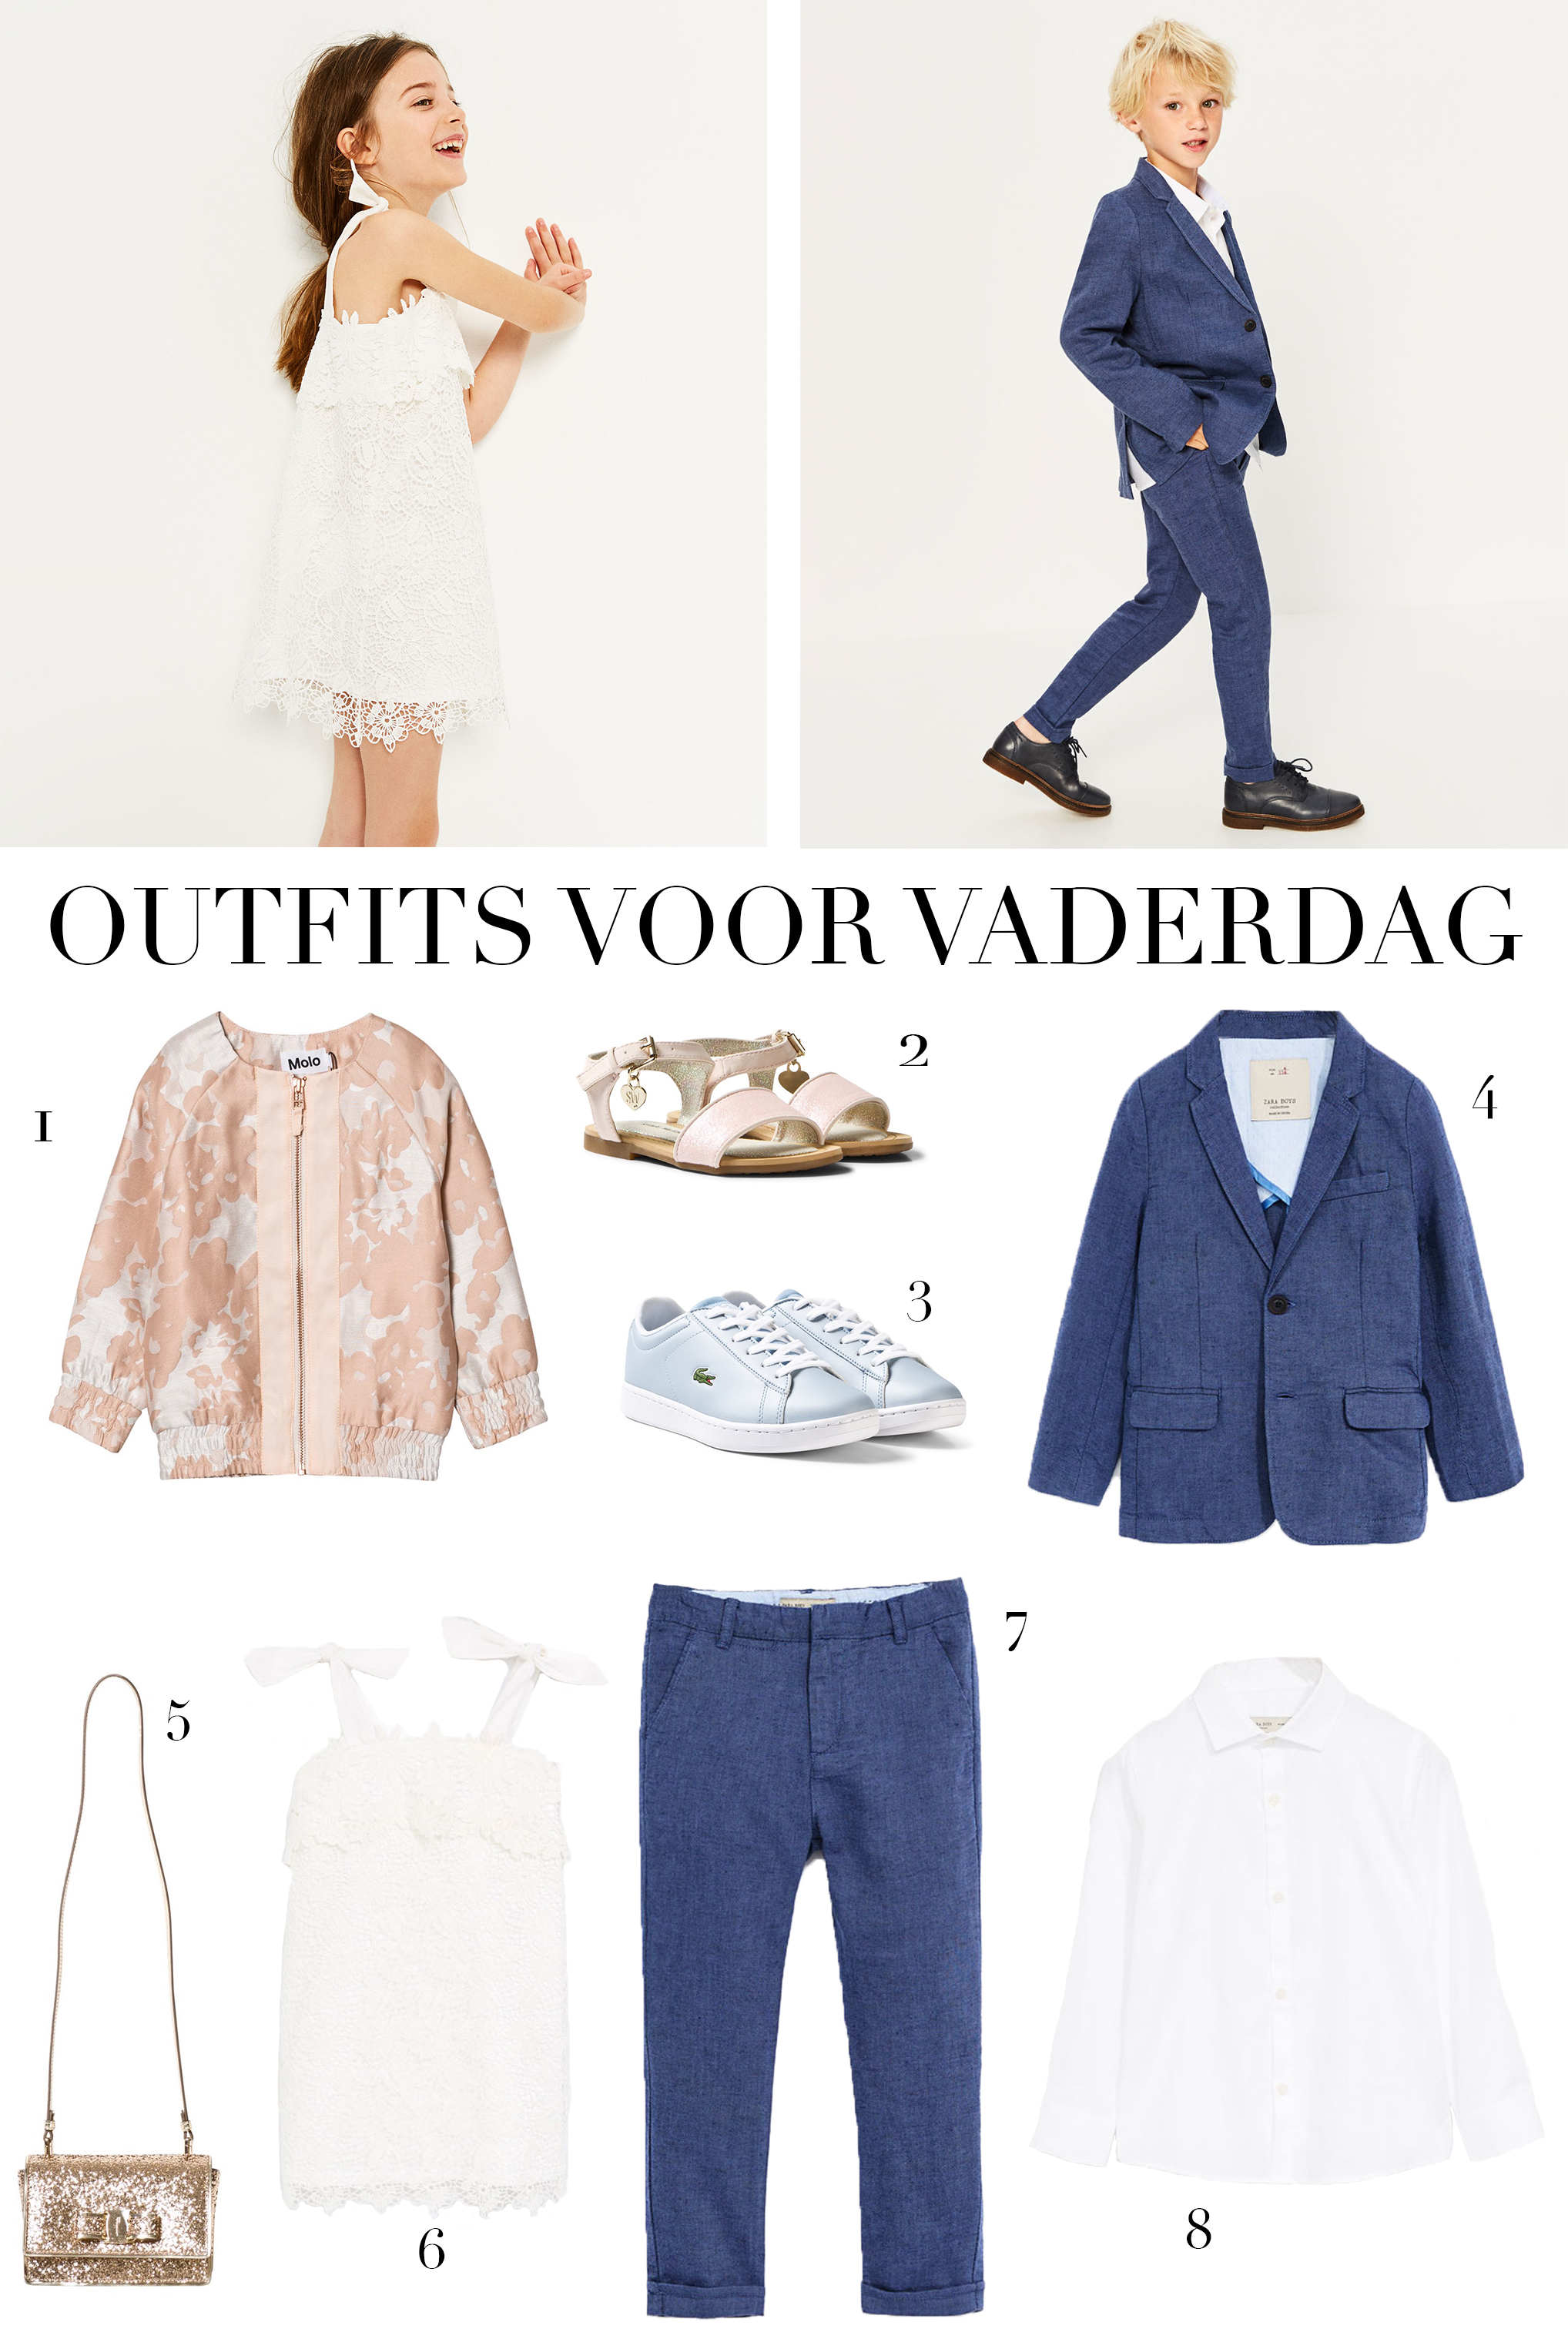 outfits-voor-vaderdag-boys-girls-the-mom